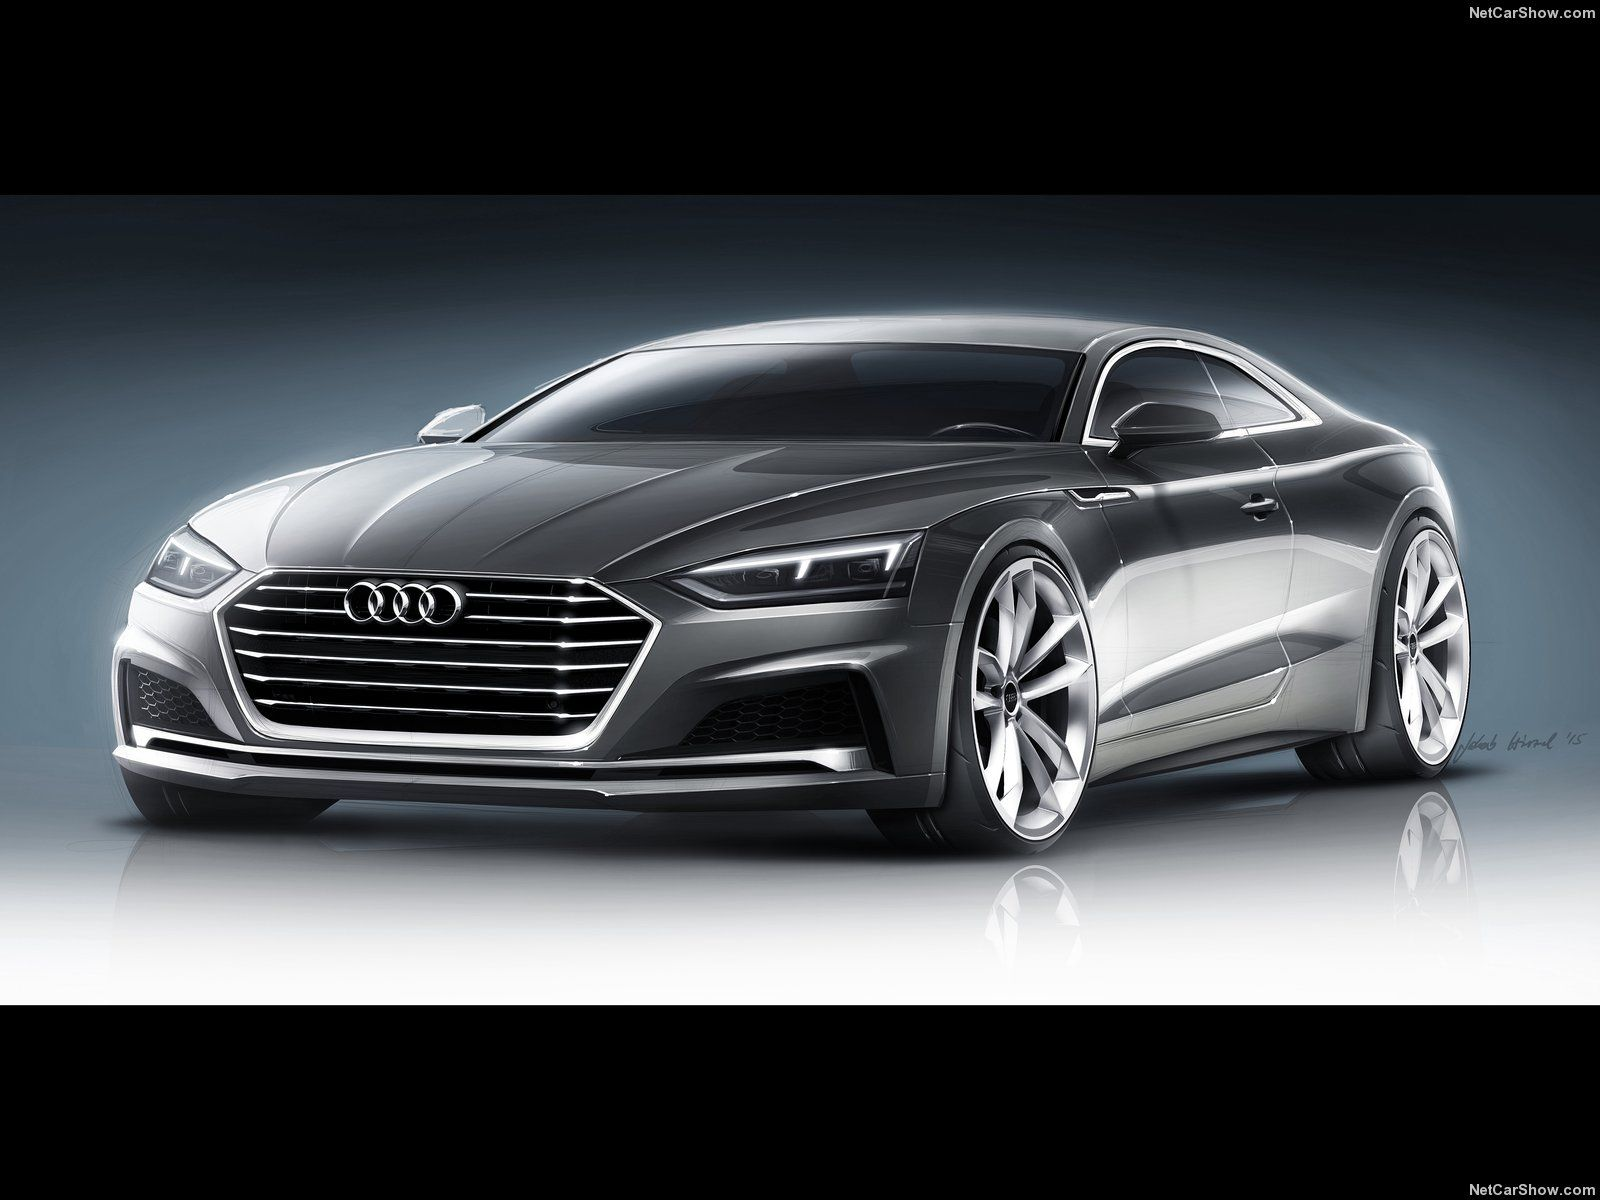 audi a5 coupe 2017 vehicle concept render. Black Bedroom Furniture Sets. Home Design Ideas